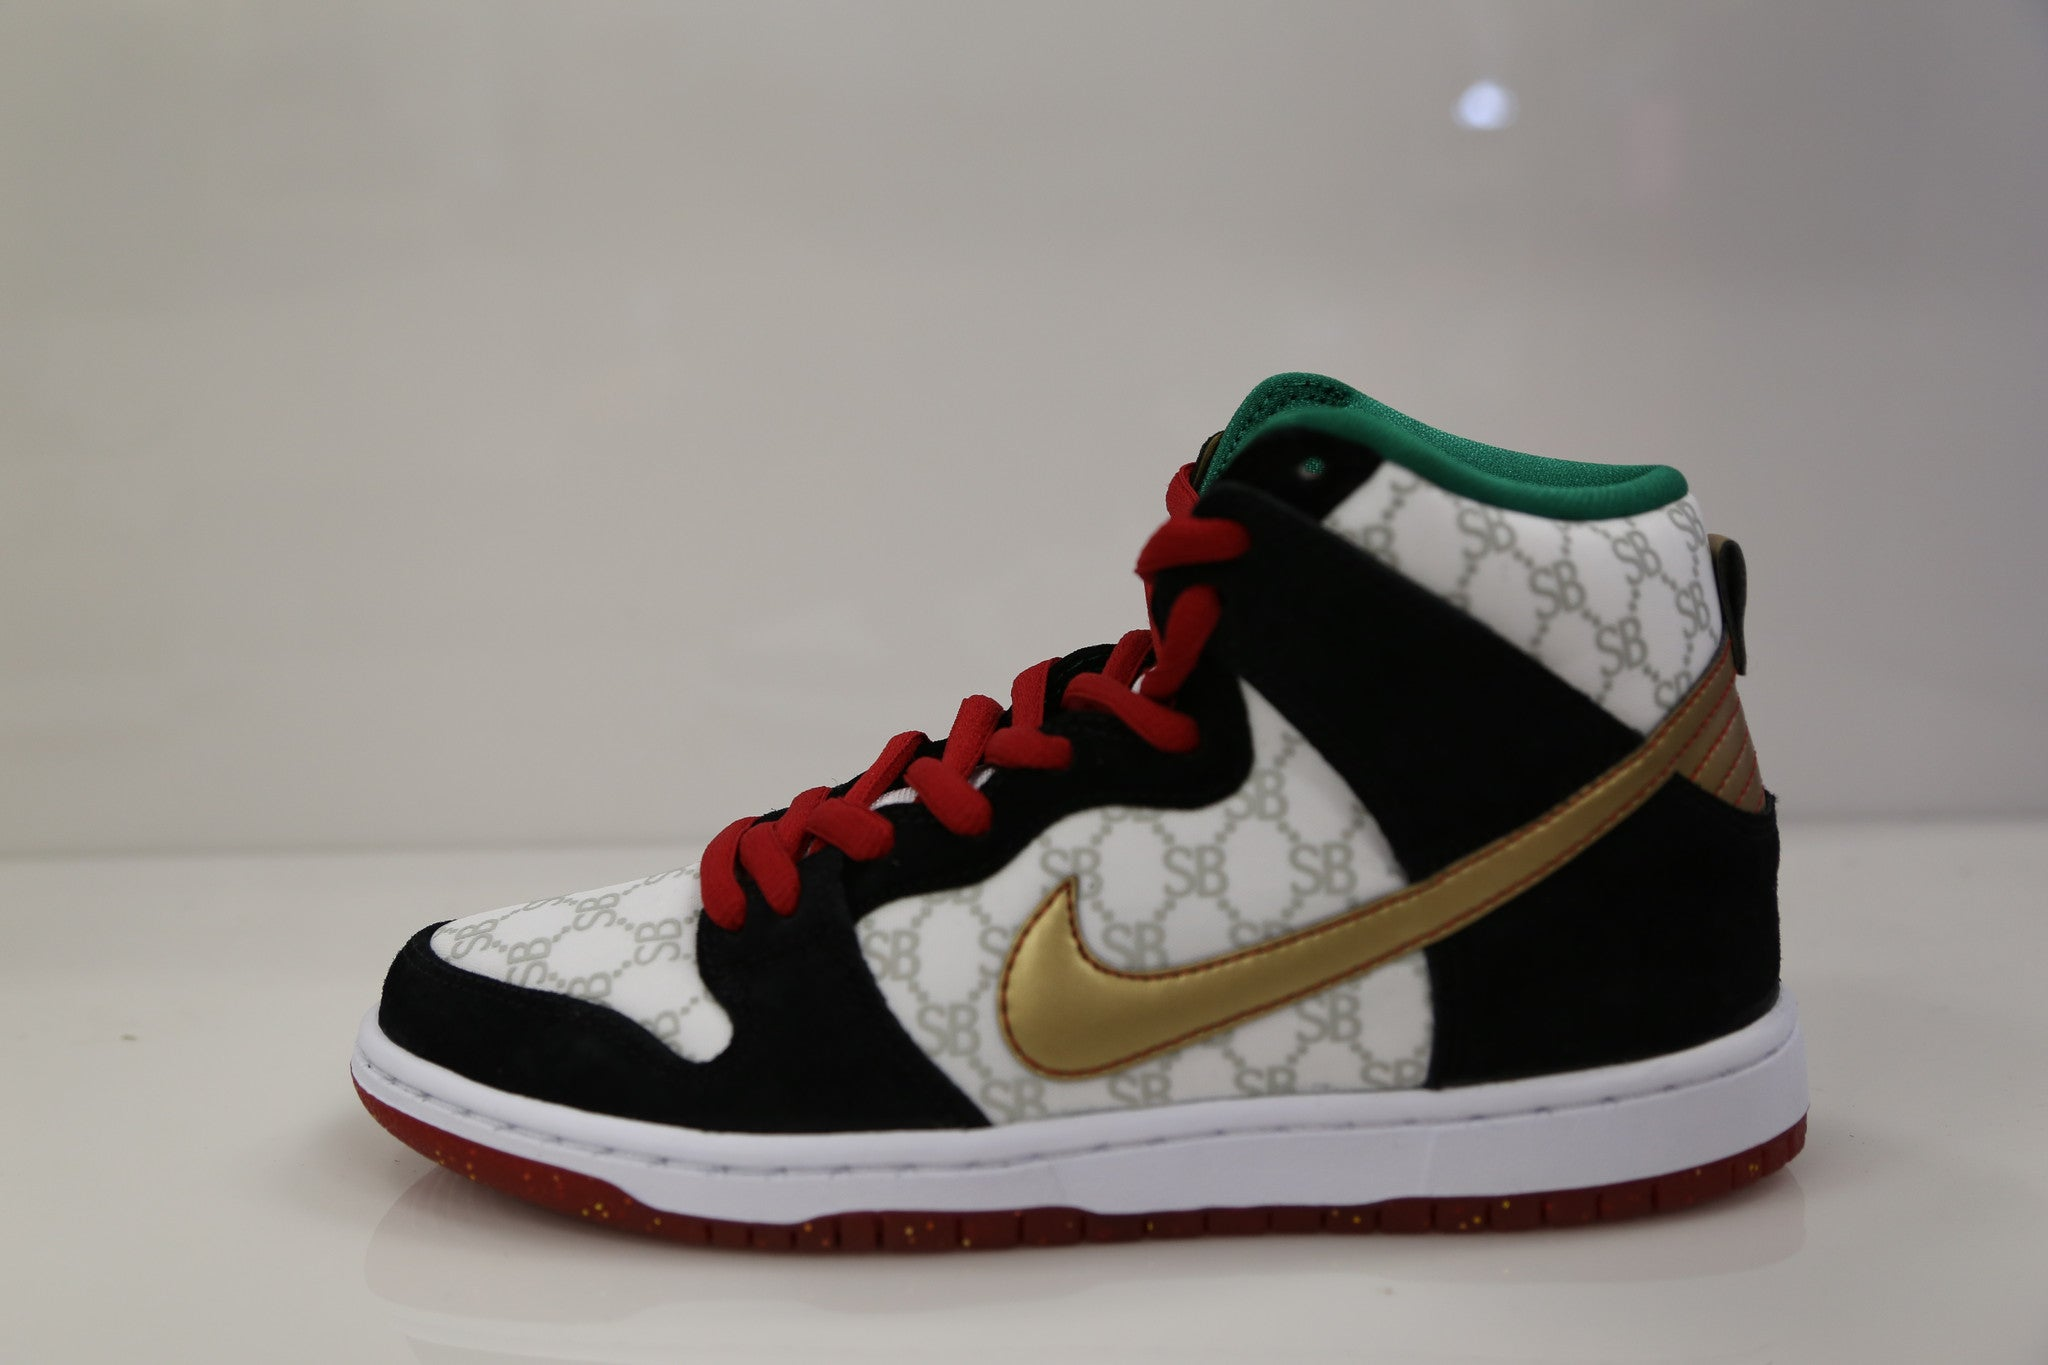 f16321a42a54 Nike Dunk High Premium SB Black Sheep Gcci 313171-170 7deq.JPG v 1403919192